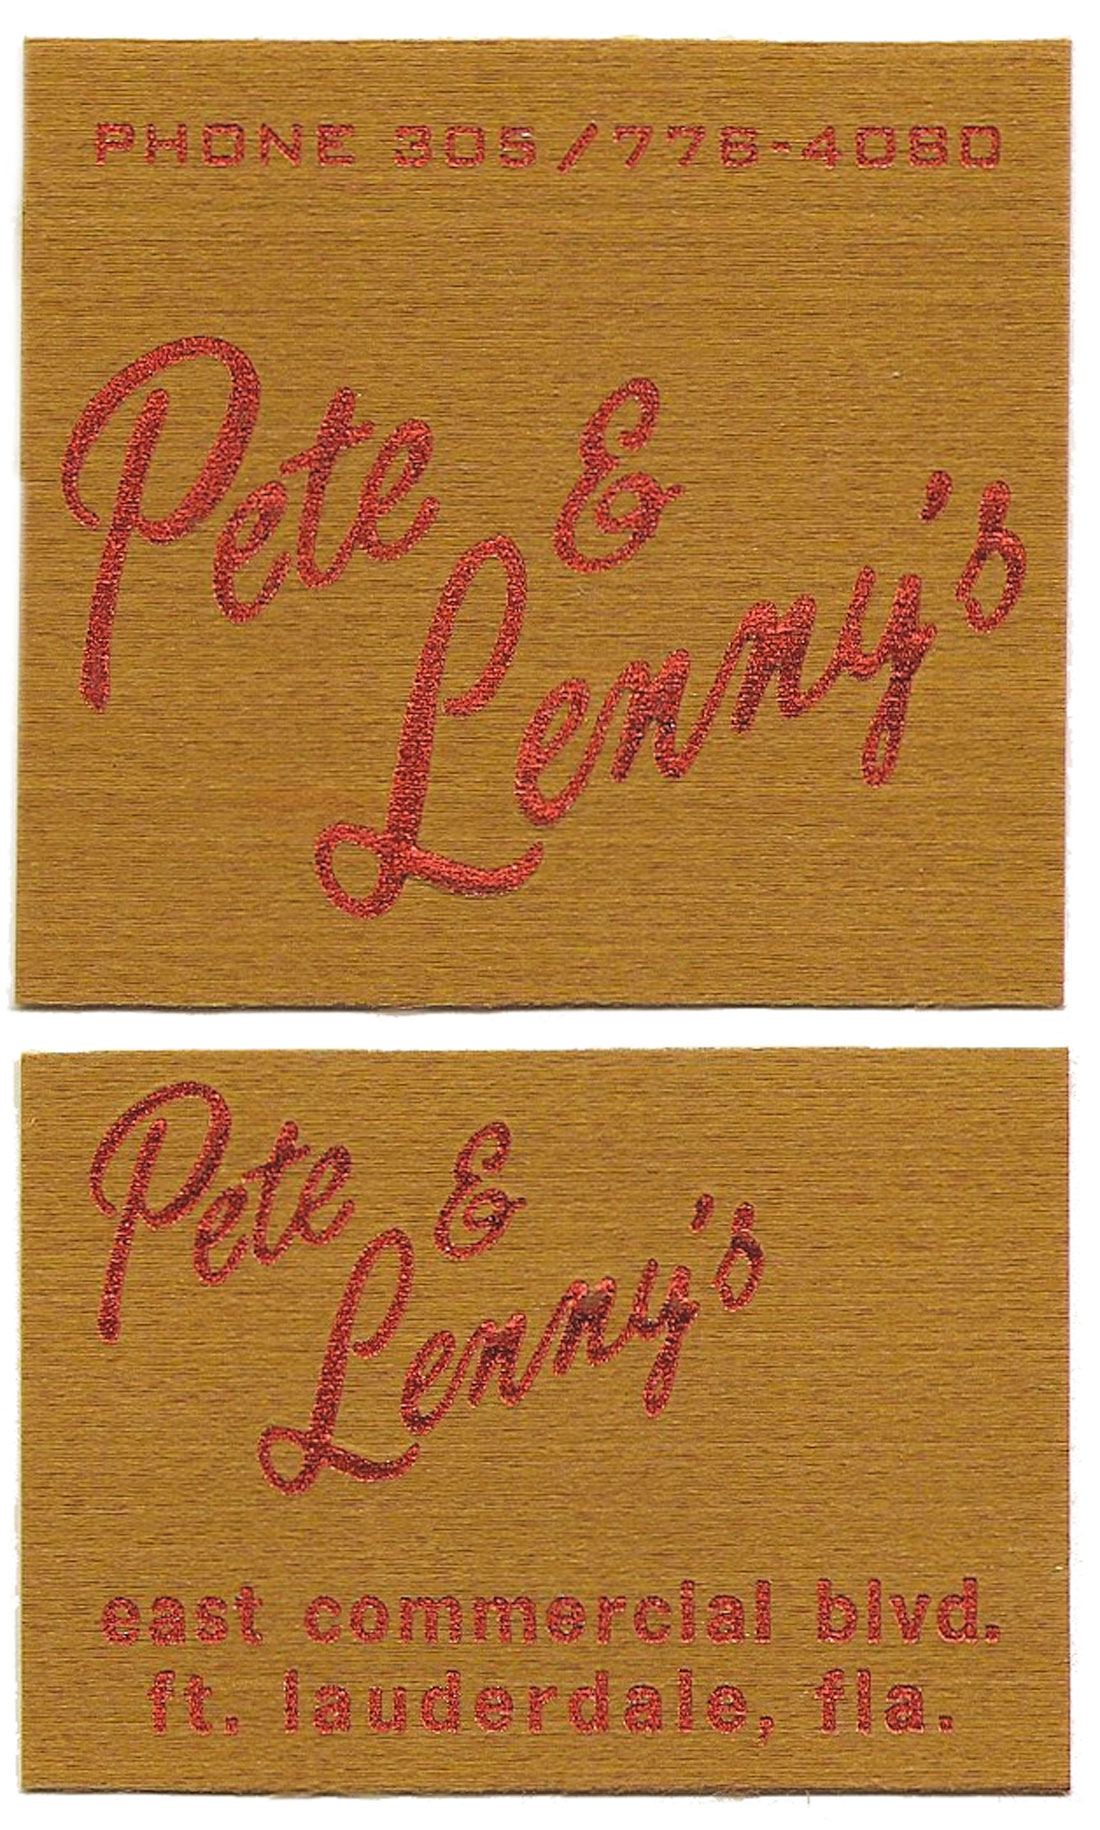 Pete & Lenny's matches